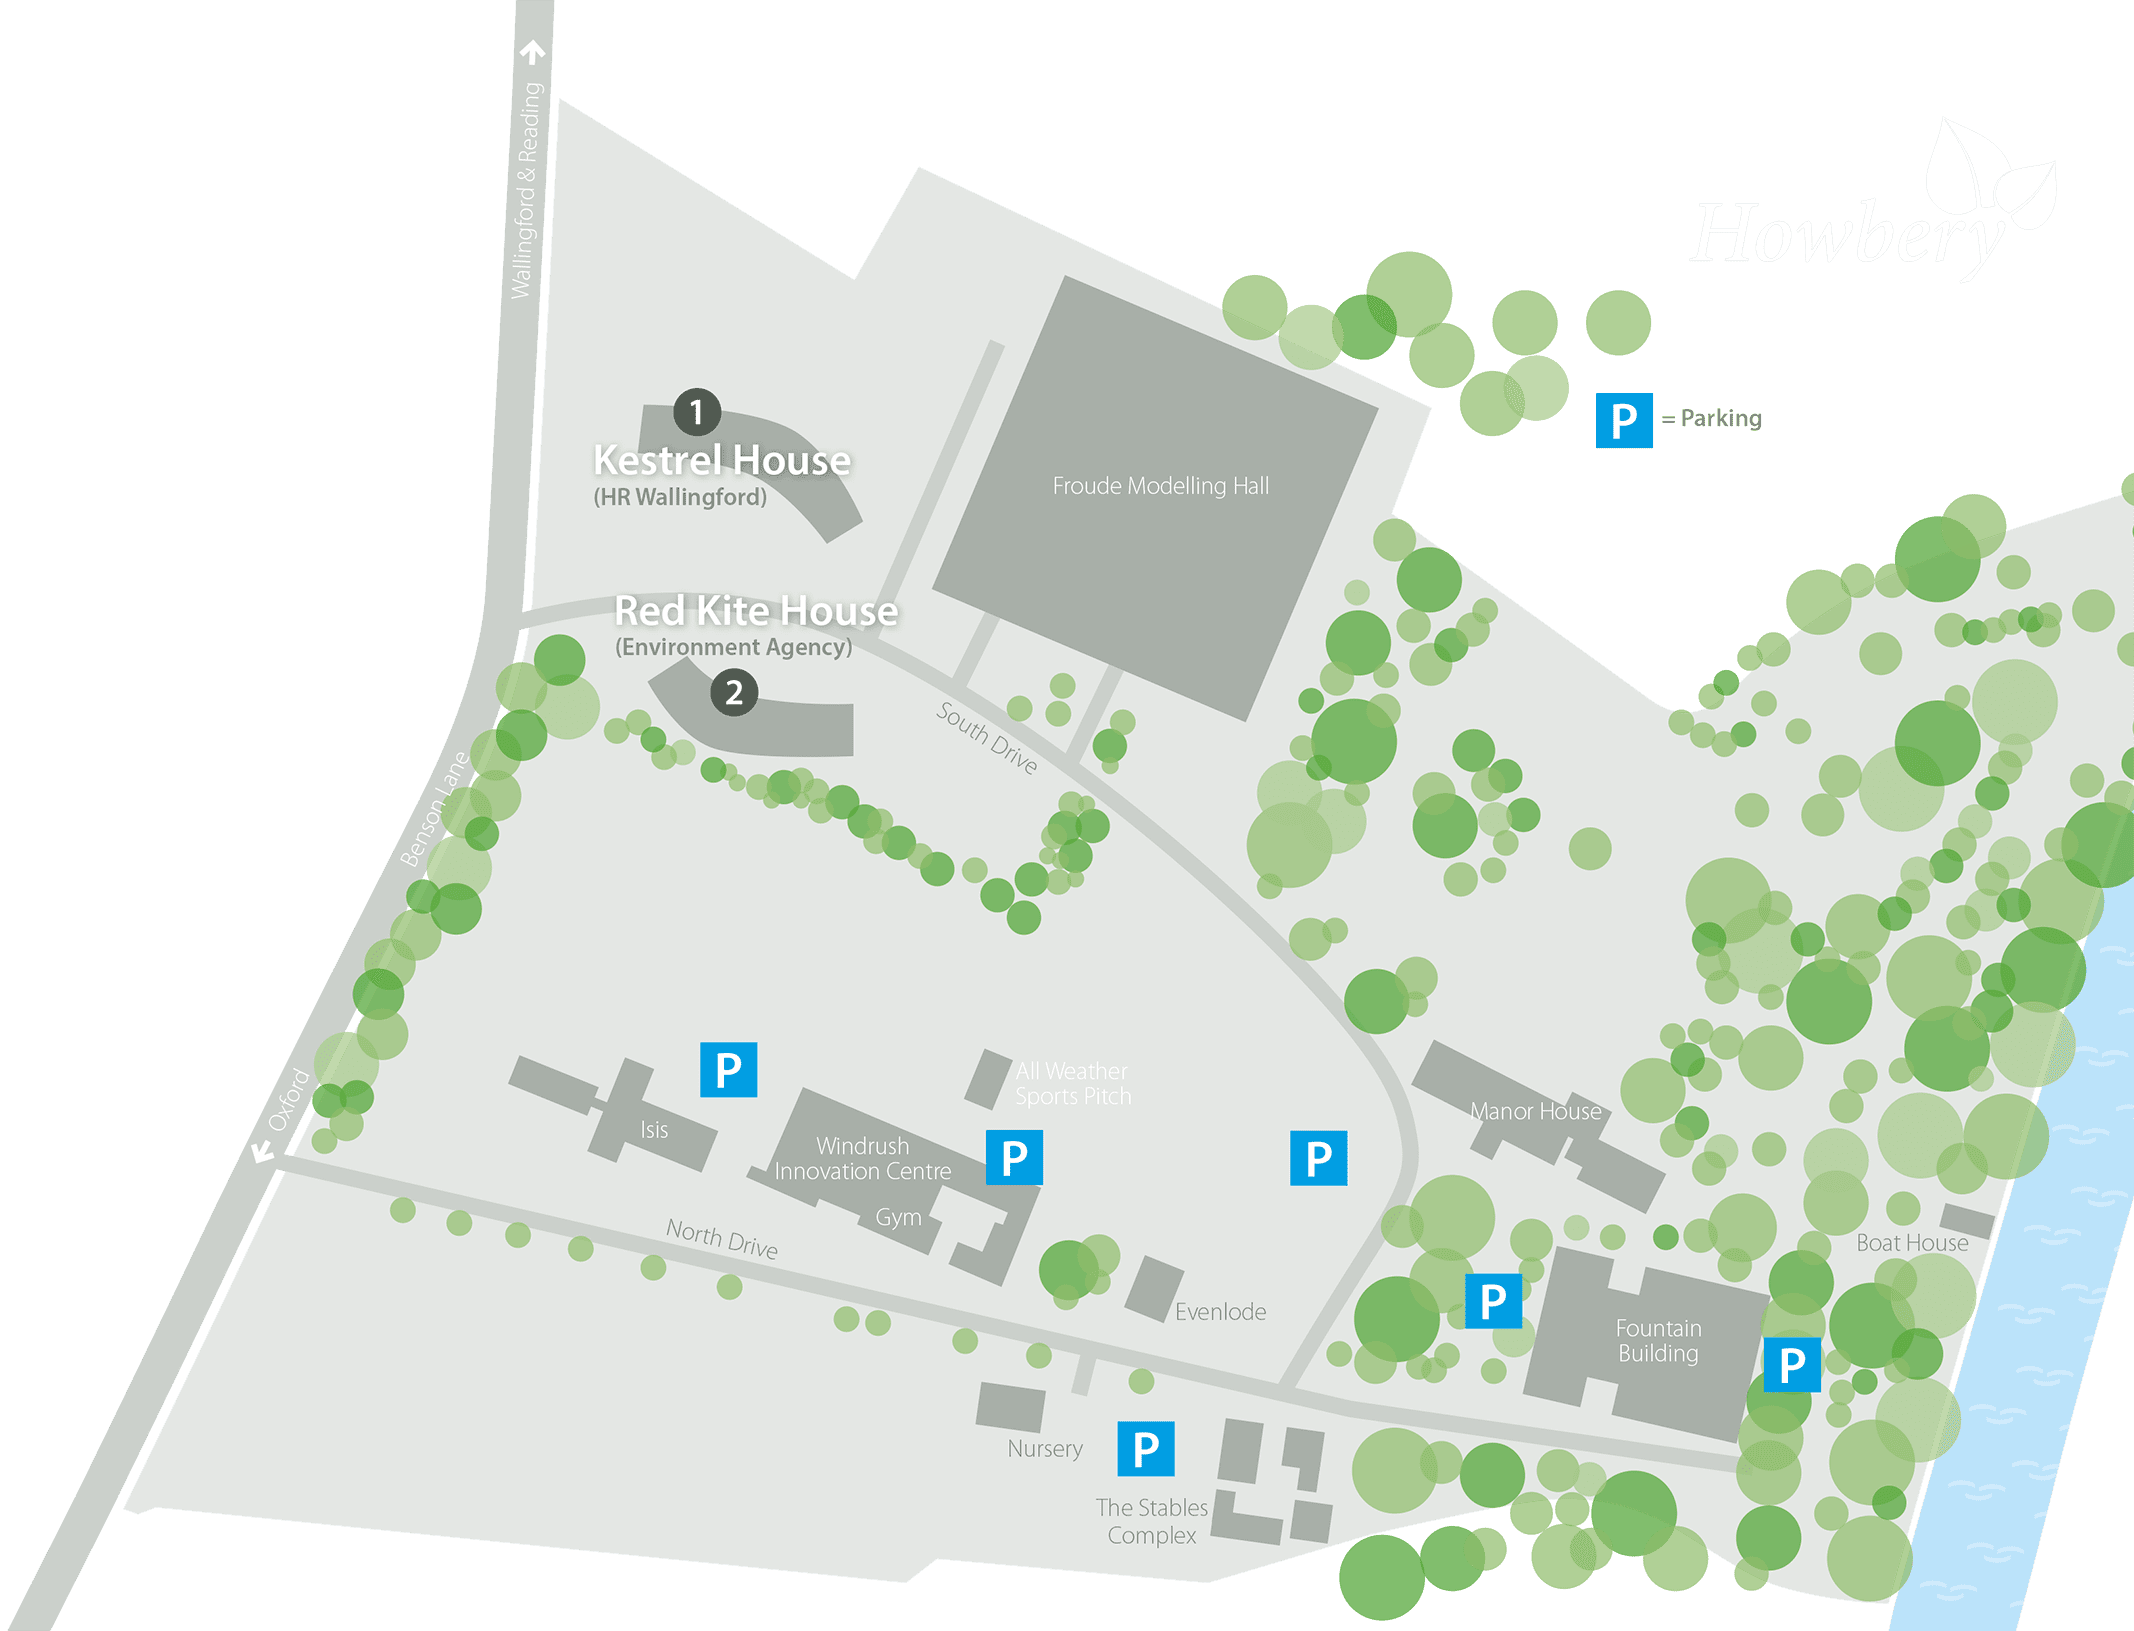 howbery-parking-plan